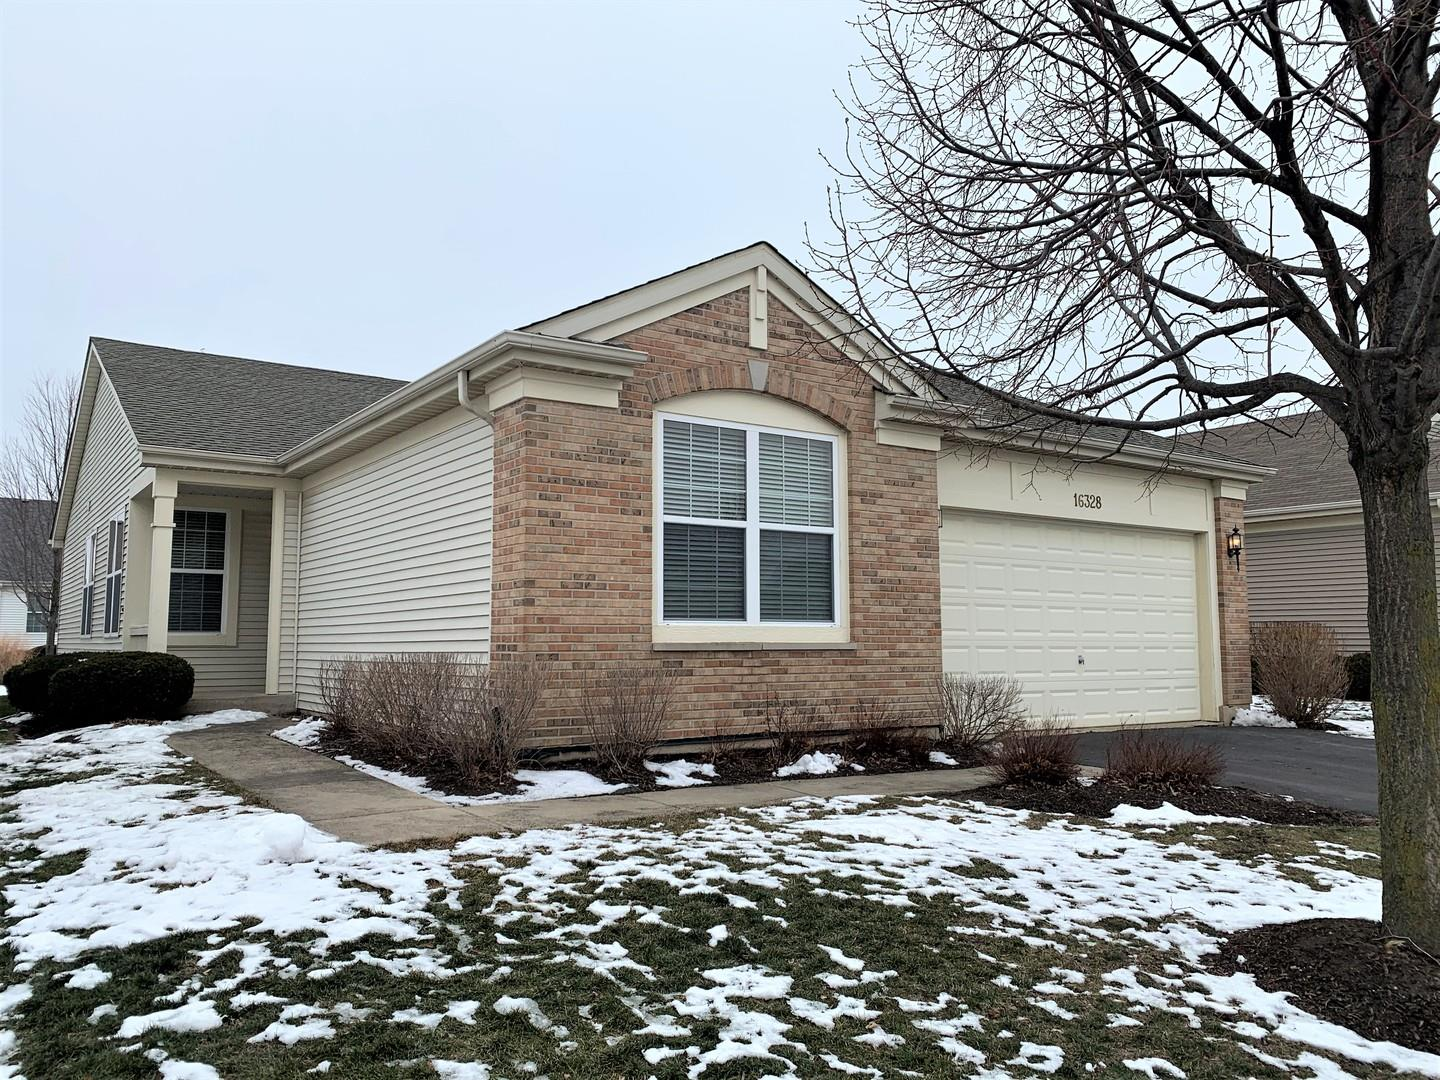 16328 Eugene Siegel Court, Crest Hill, IL 60403 - #: 10972503